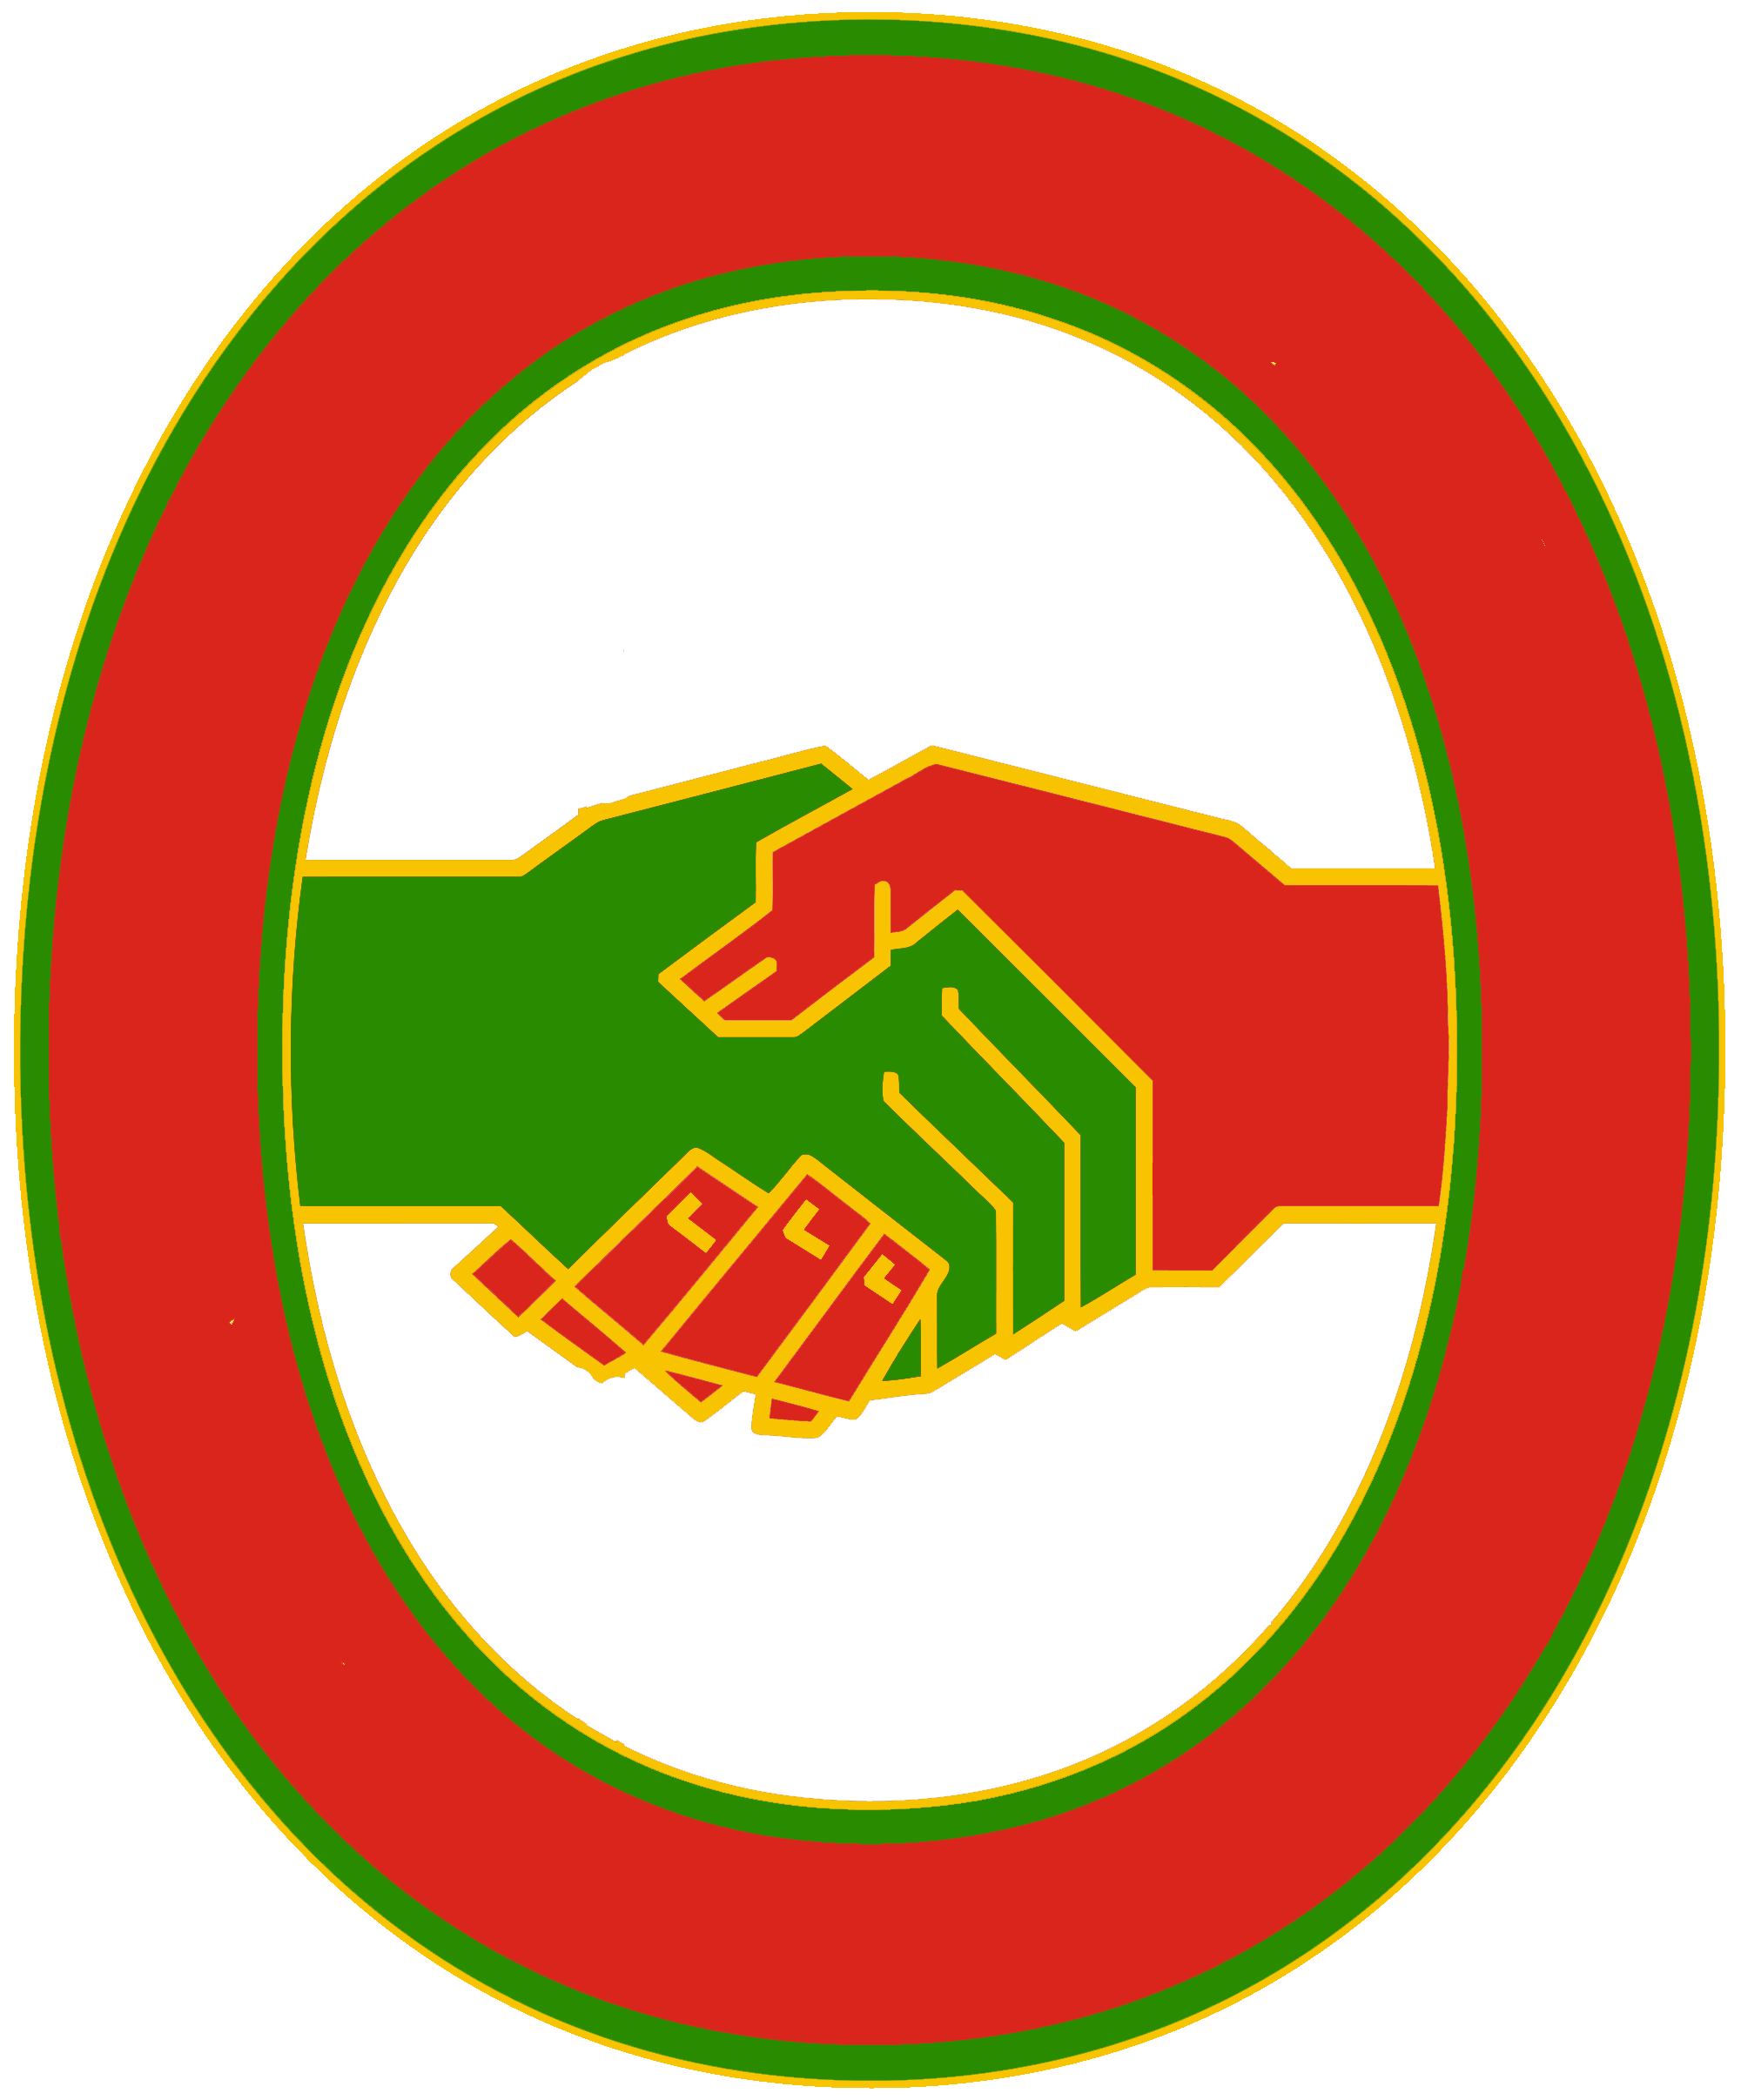 United workers front constructed. Geography clipart real world